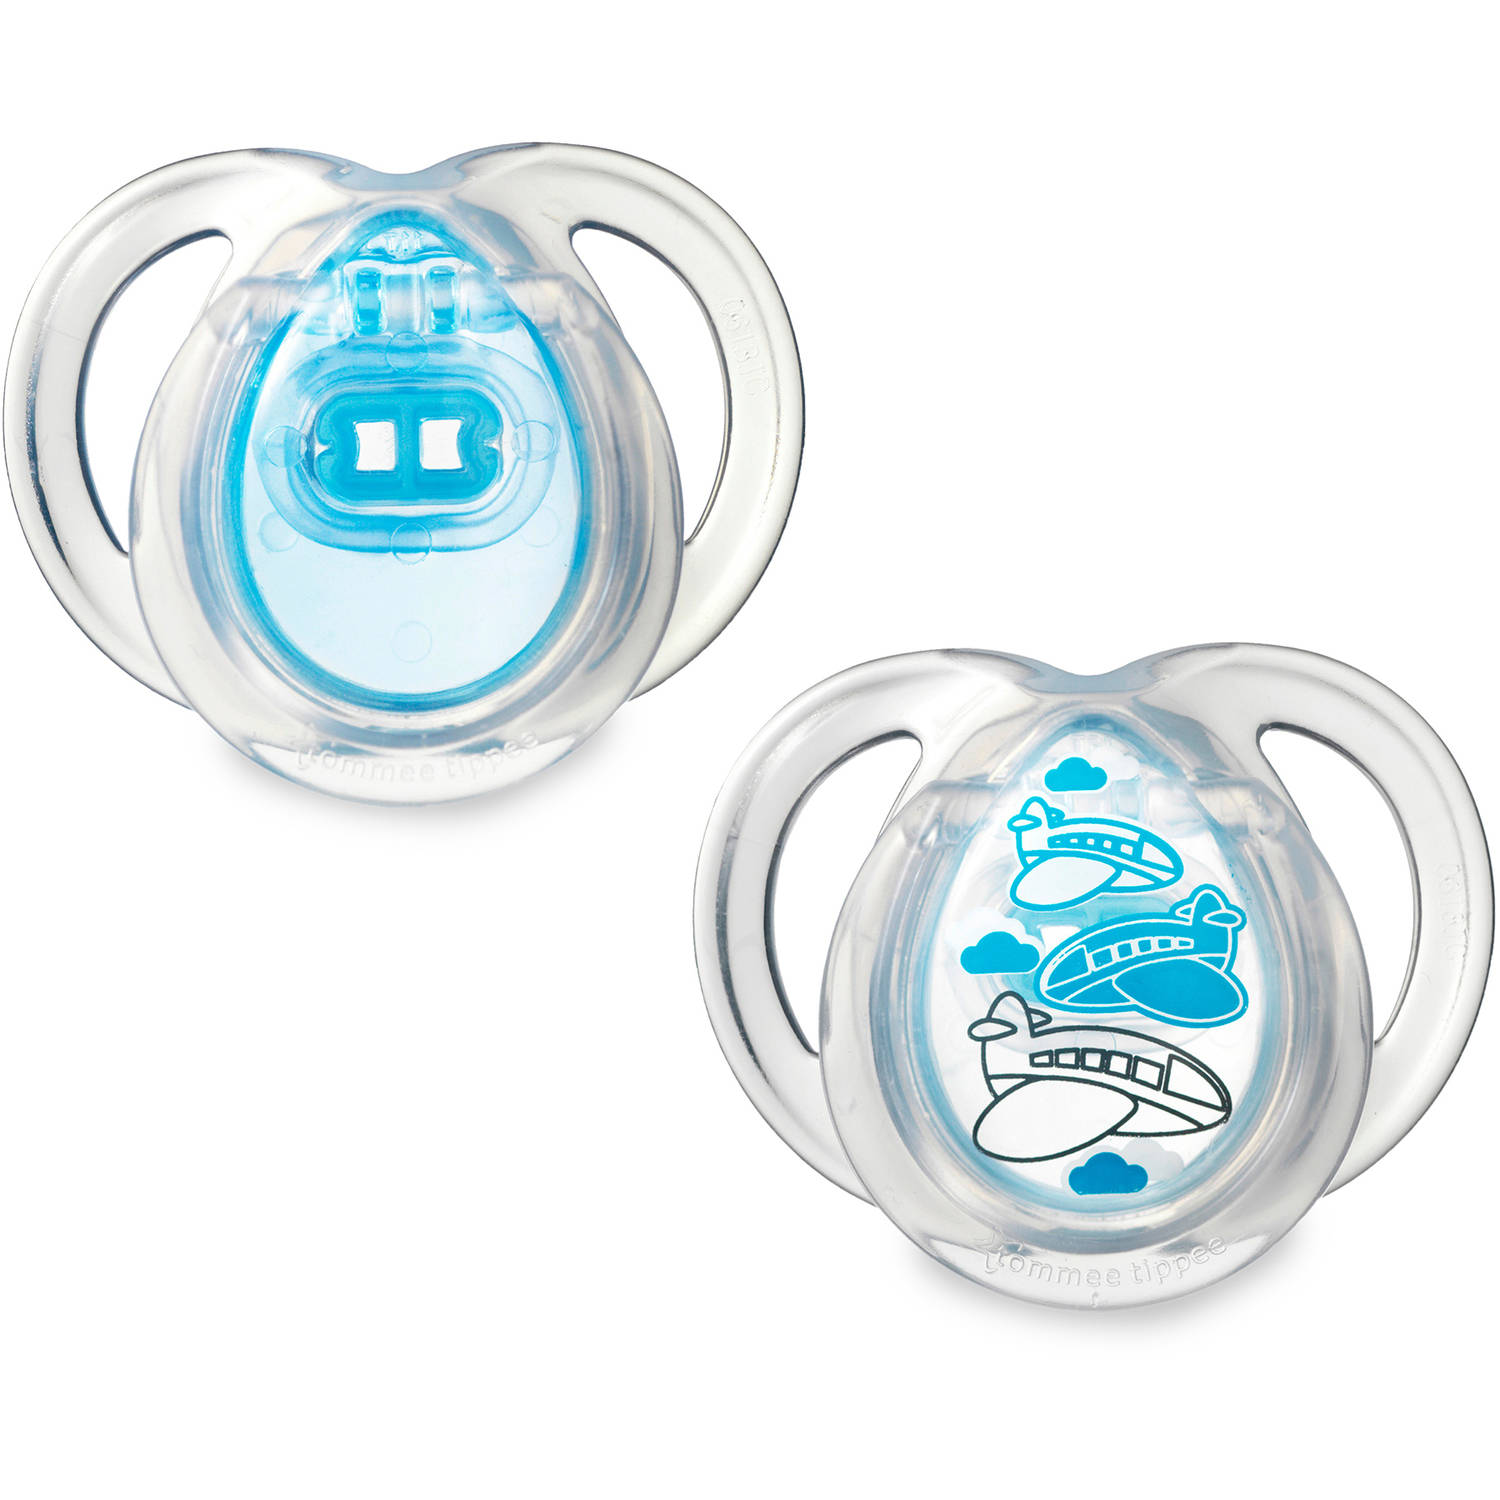 Tommee Tippee Closer to Nature 0-6 Month Everyday Pacifiers, 2pk, Boy